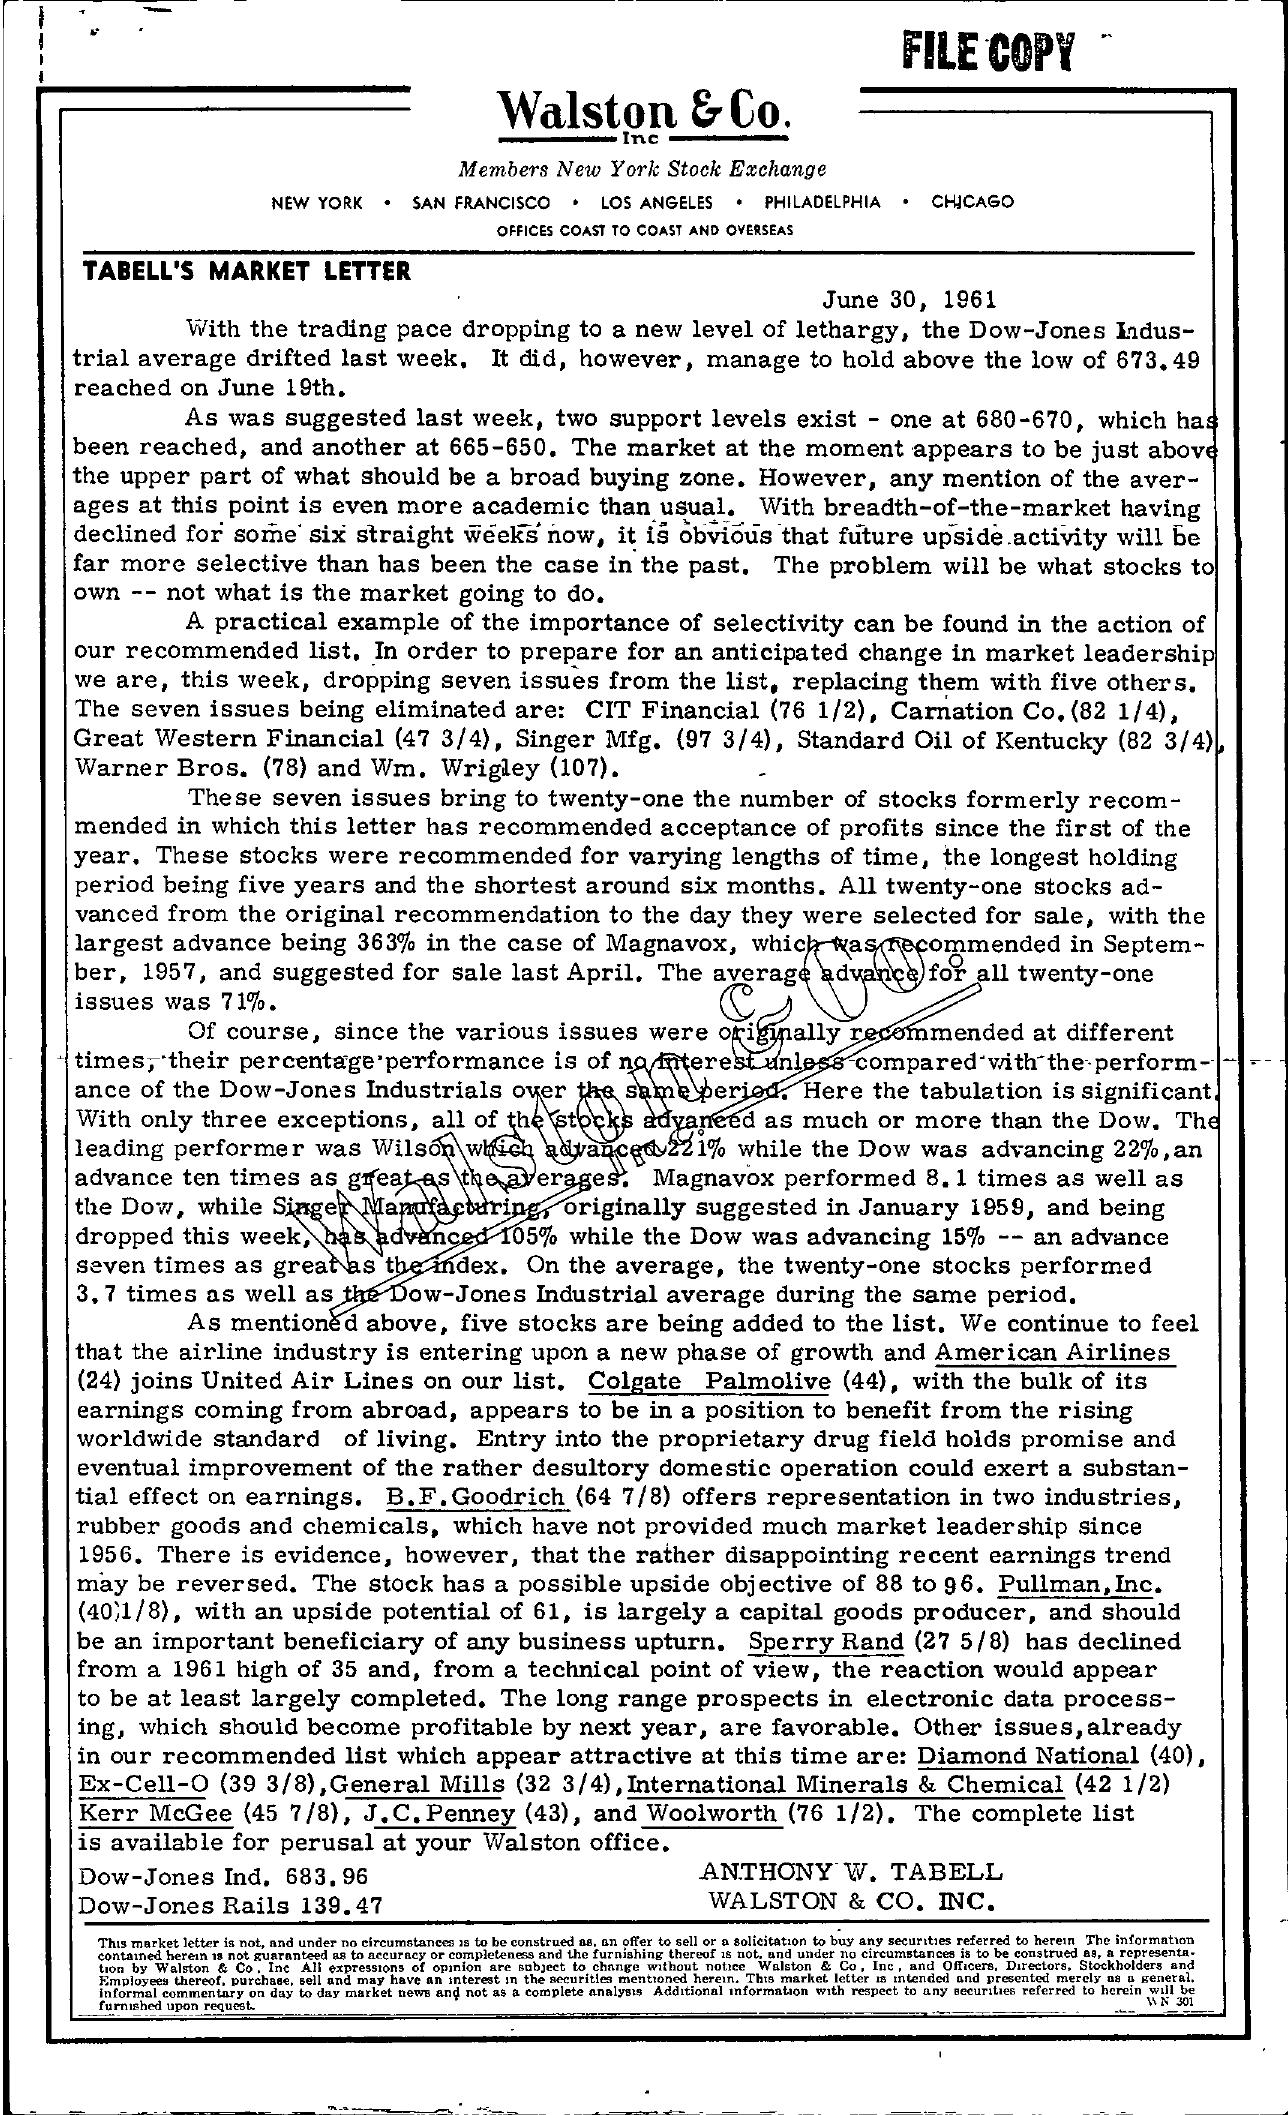 Tabell's Market Letter - June 30, 1961 page 1